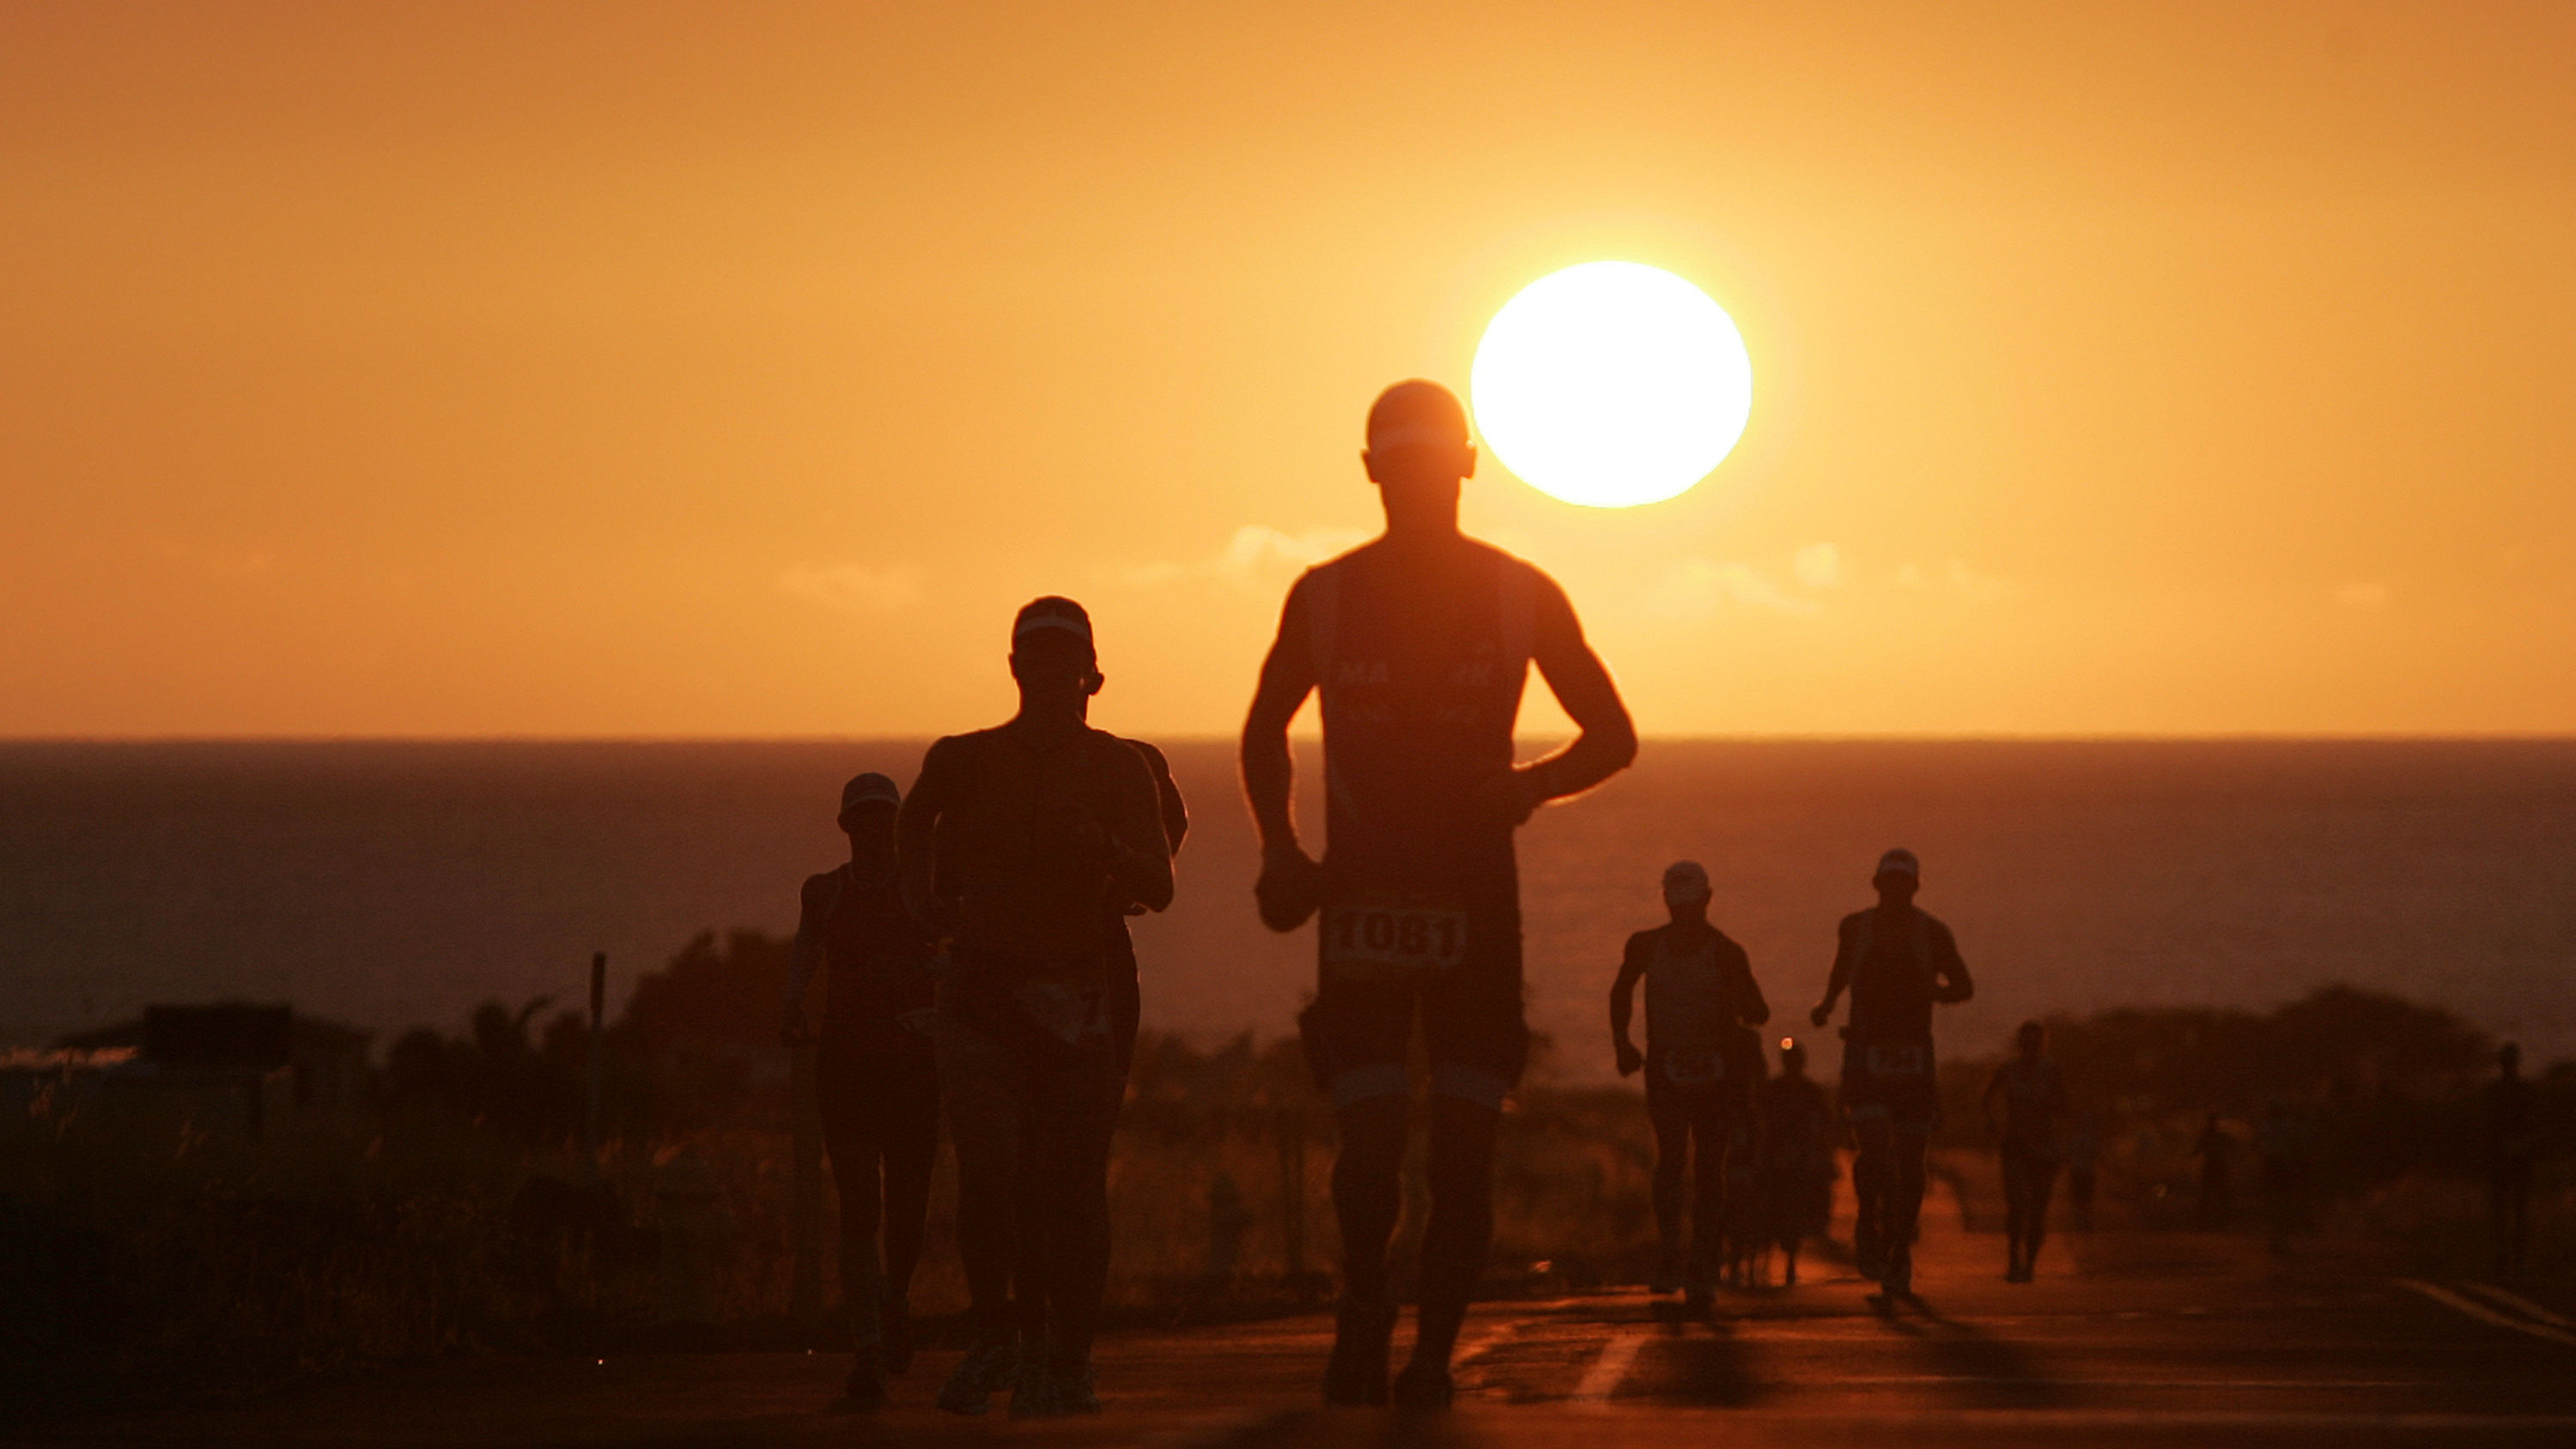 Runners cresting a hill with the sun in the background.